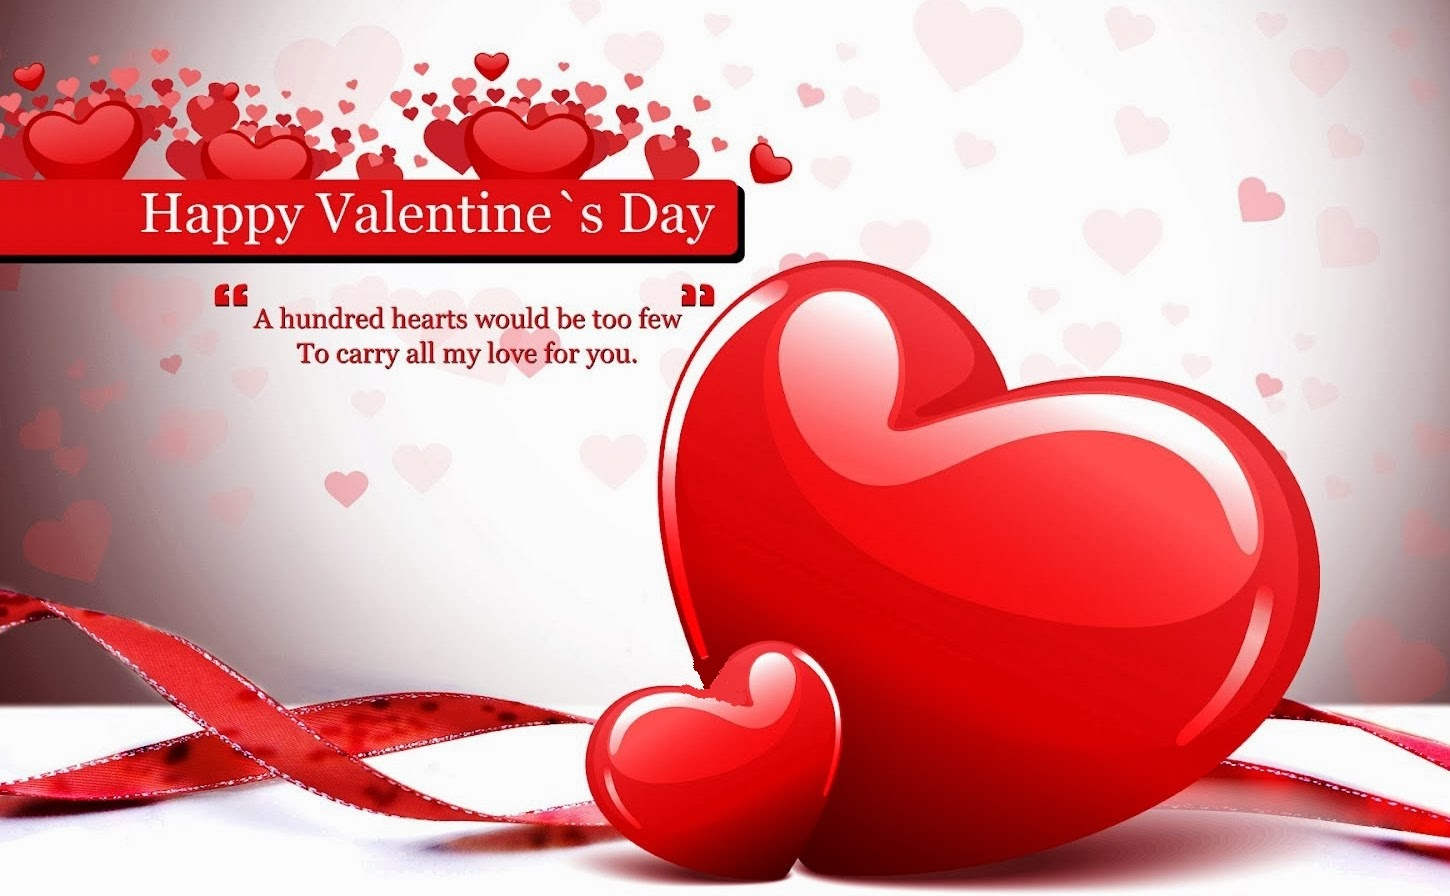 Missing Beats Of Life: Happy Valentine's Day (14th